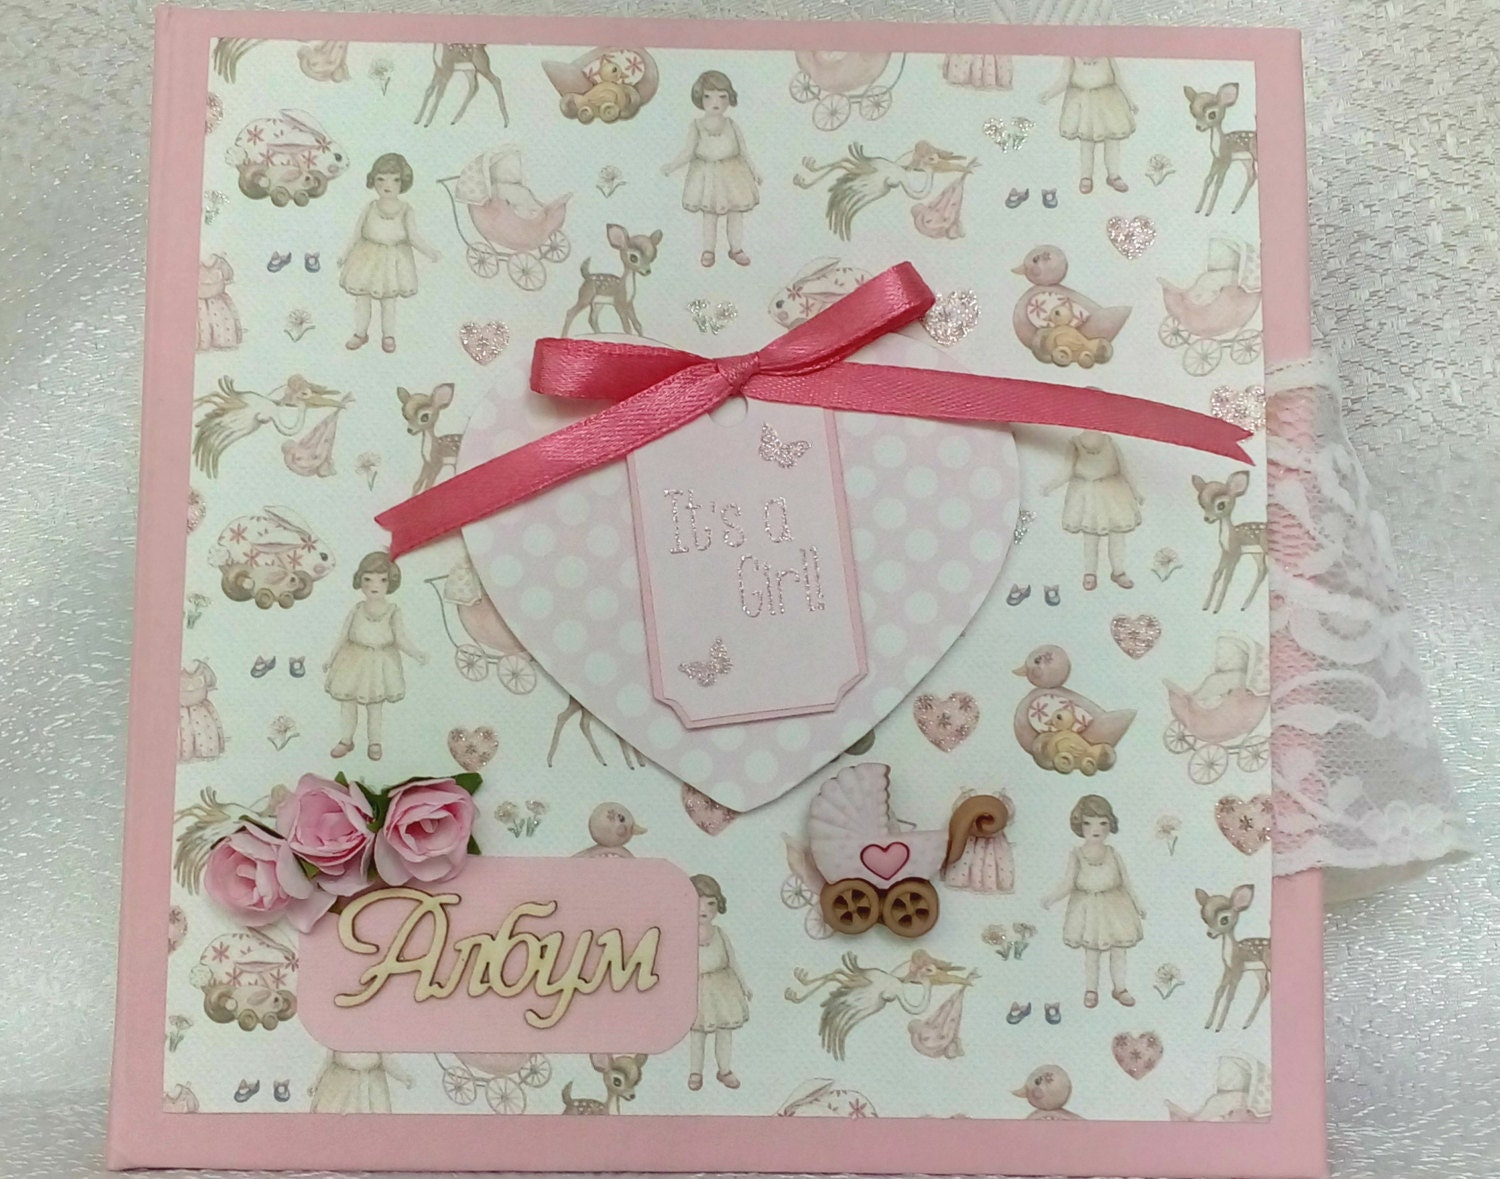 How to scrapbook baby book - Sold By Kalibart